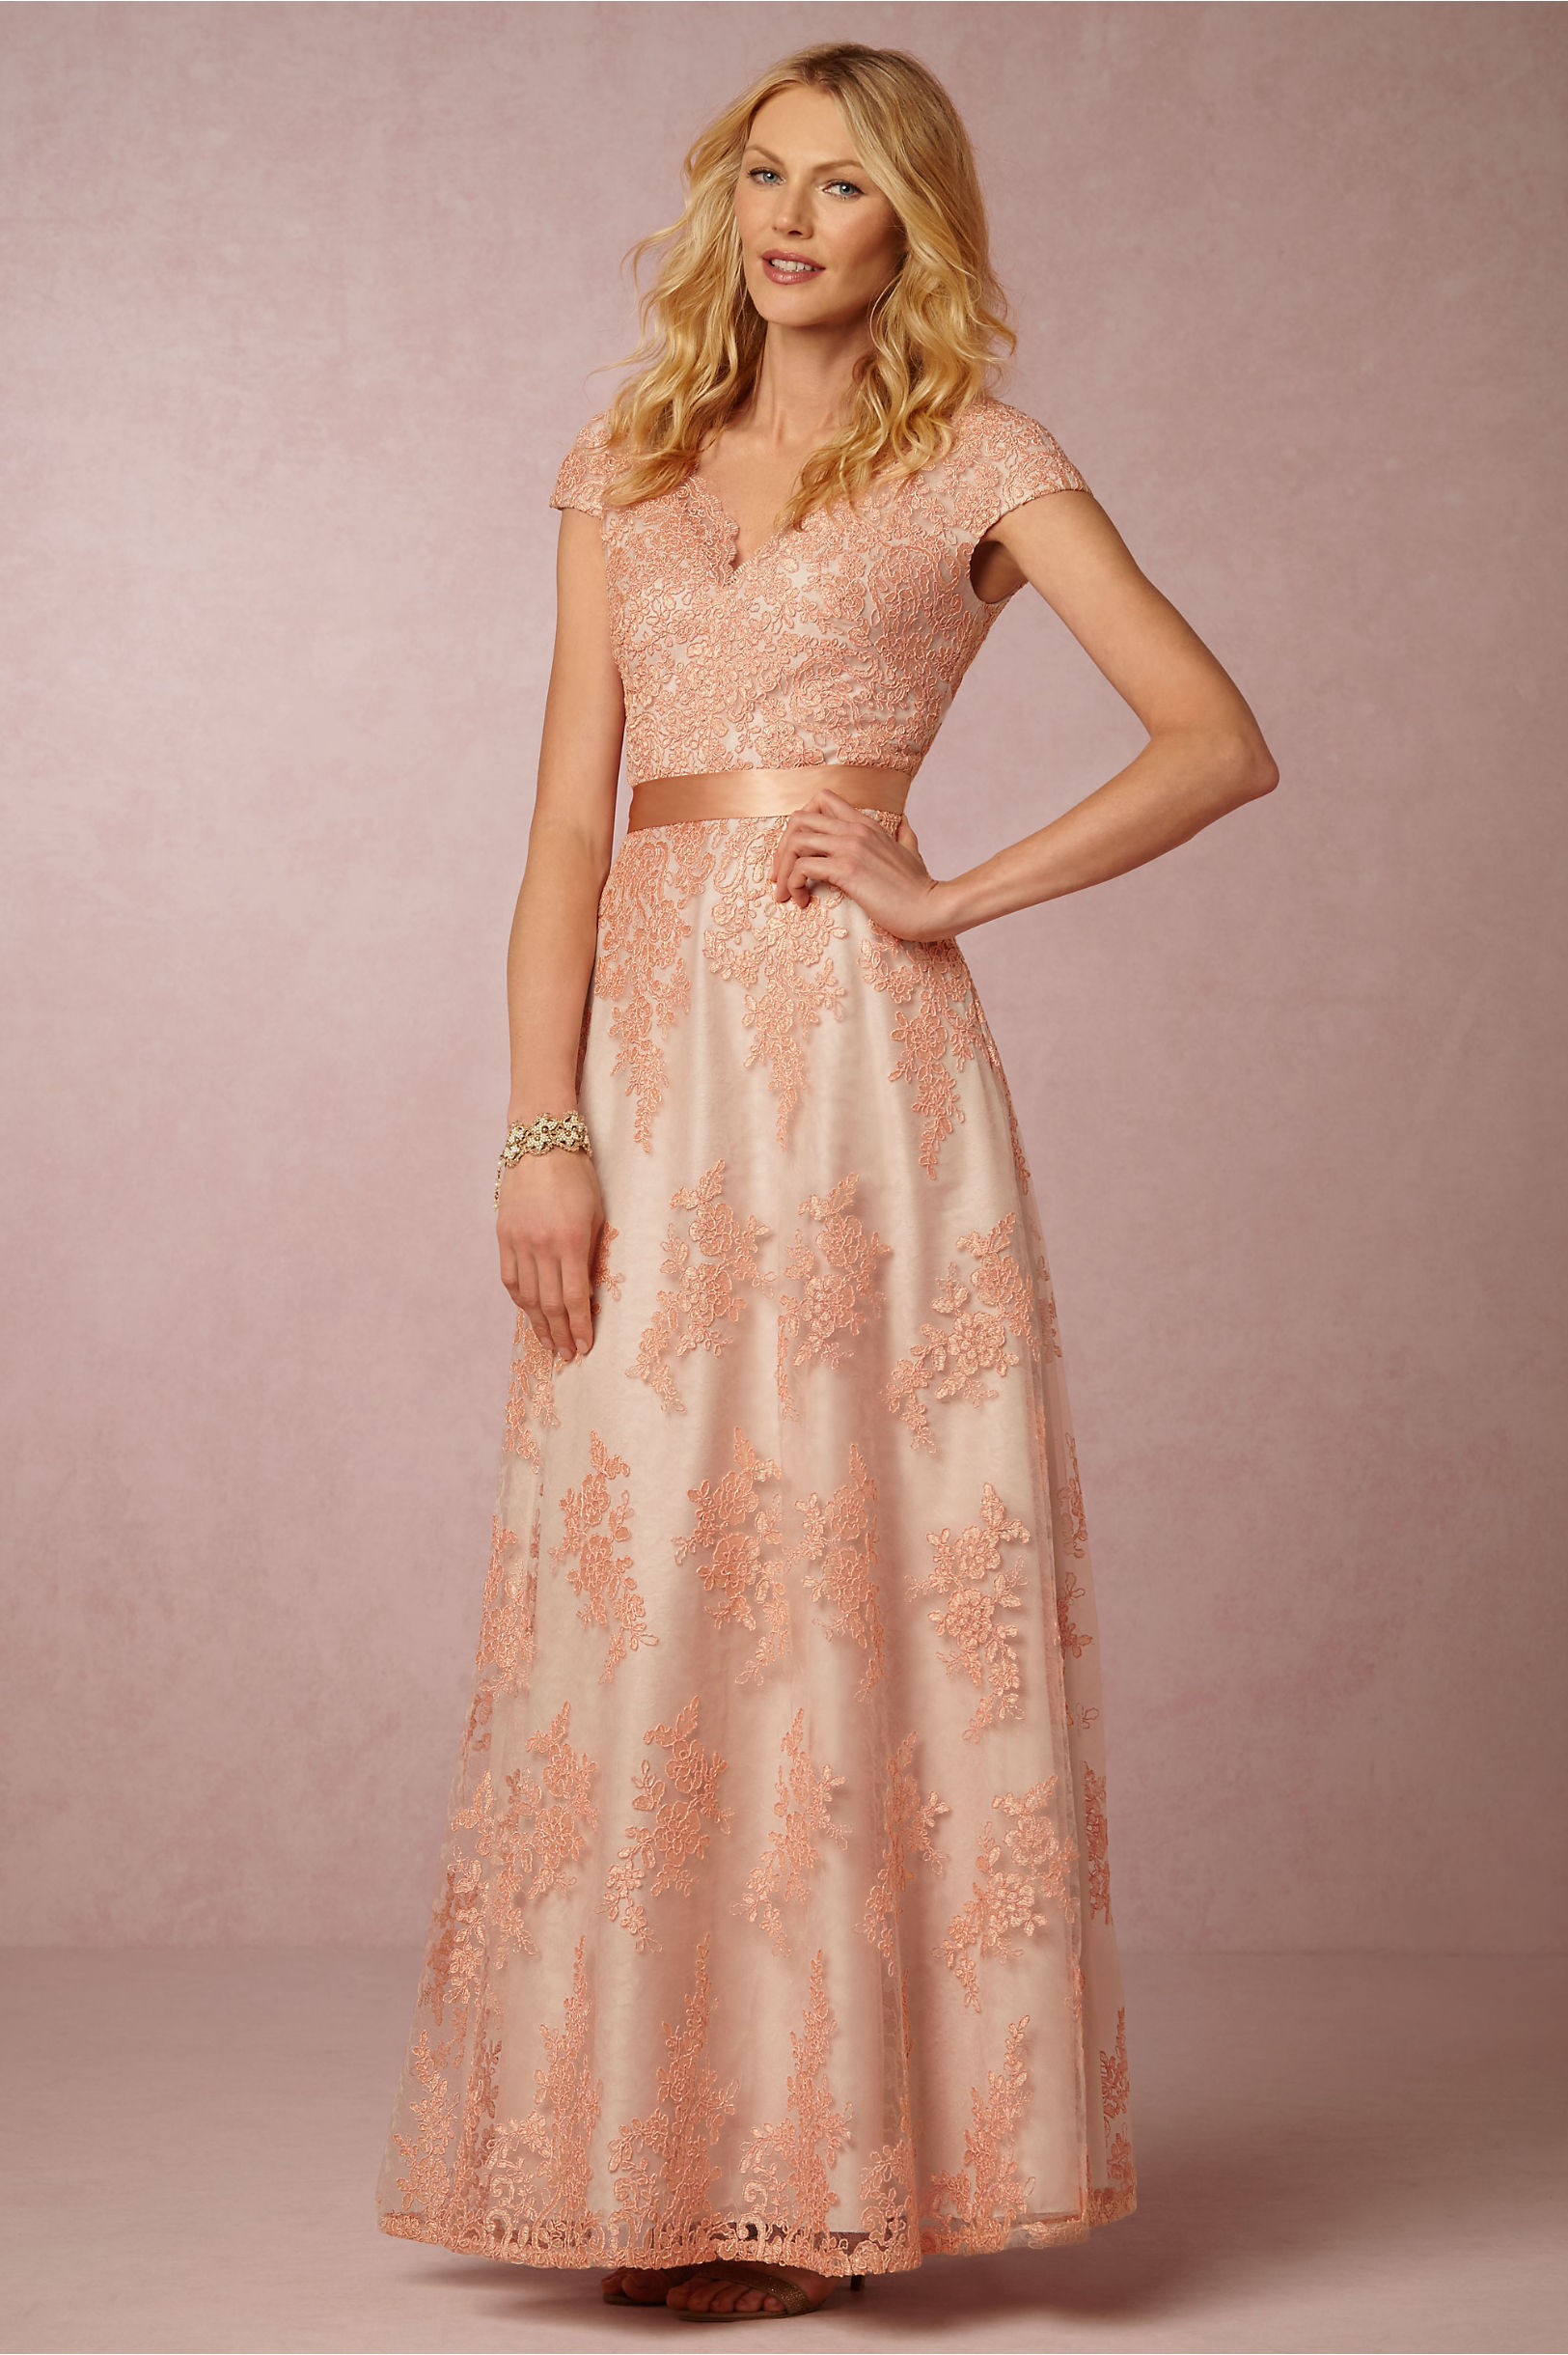 Cute Aidan Mattox Lace Gown Ideas - Wedding and flowers ispiration ...